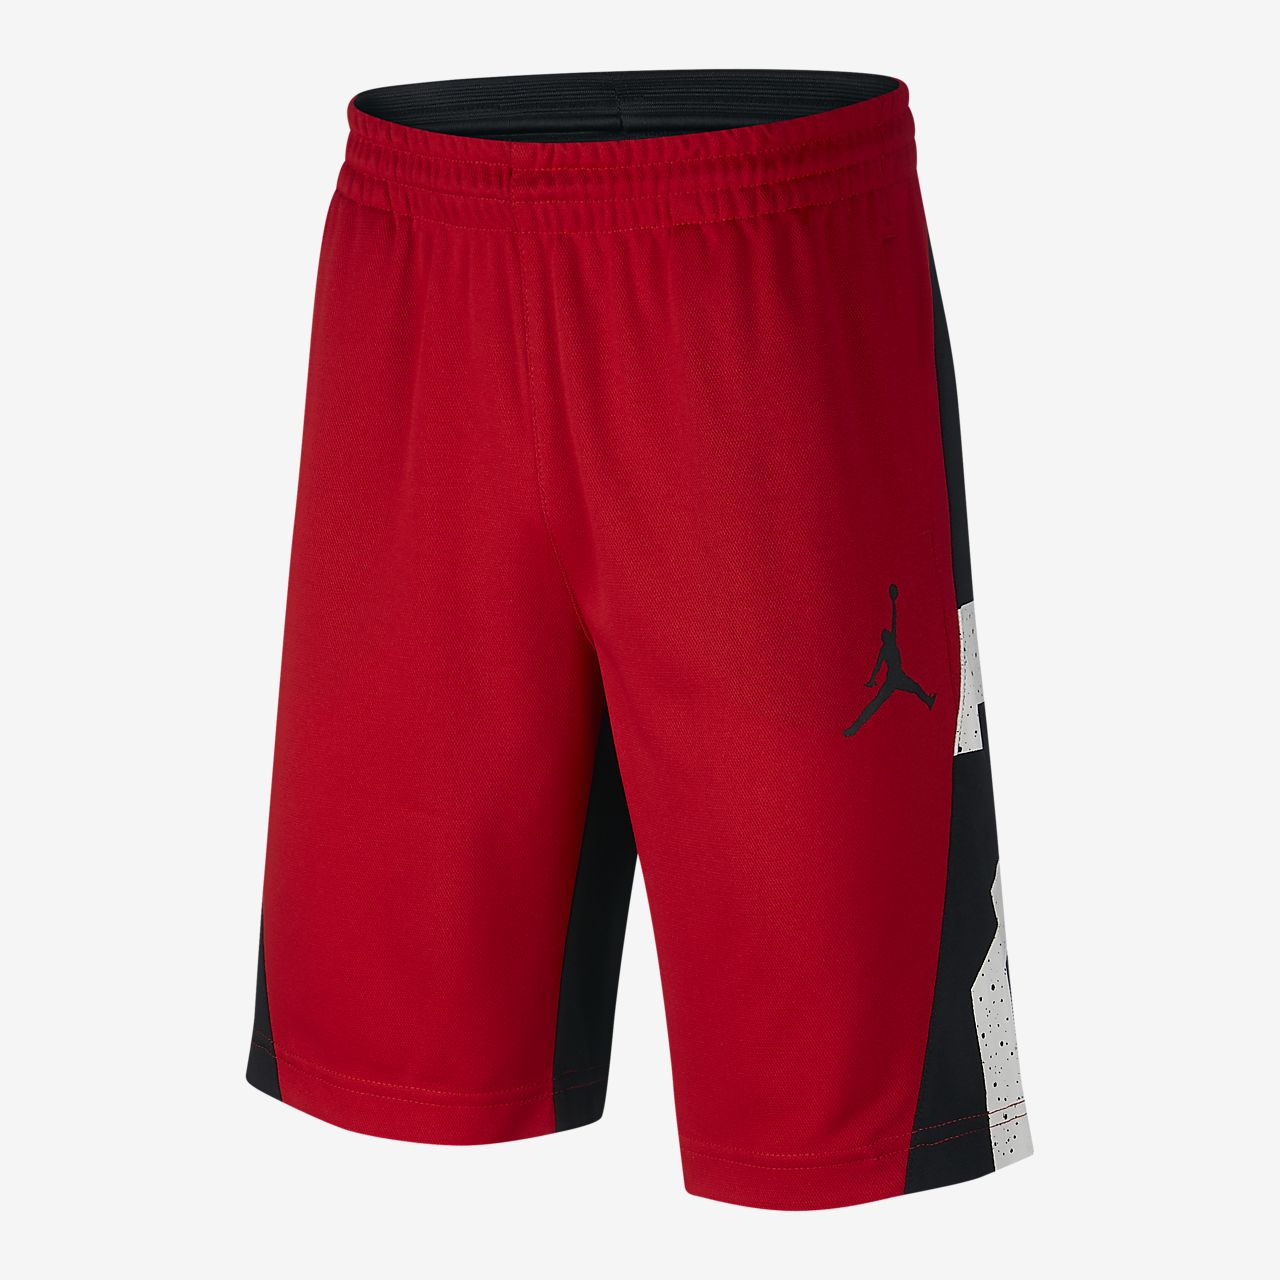 Air Jordan Kids Clothing & Accessories from CafePress are professionally printed and made of the best materials in a wide range of colors and sizes.